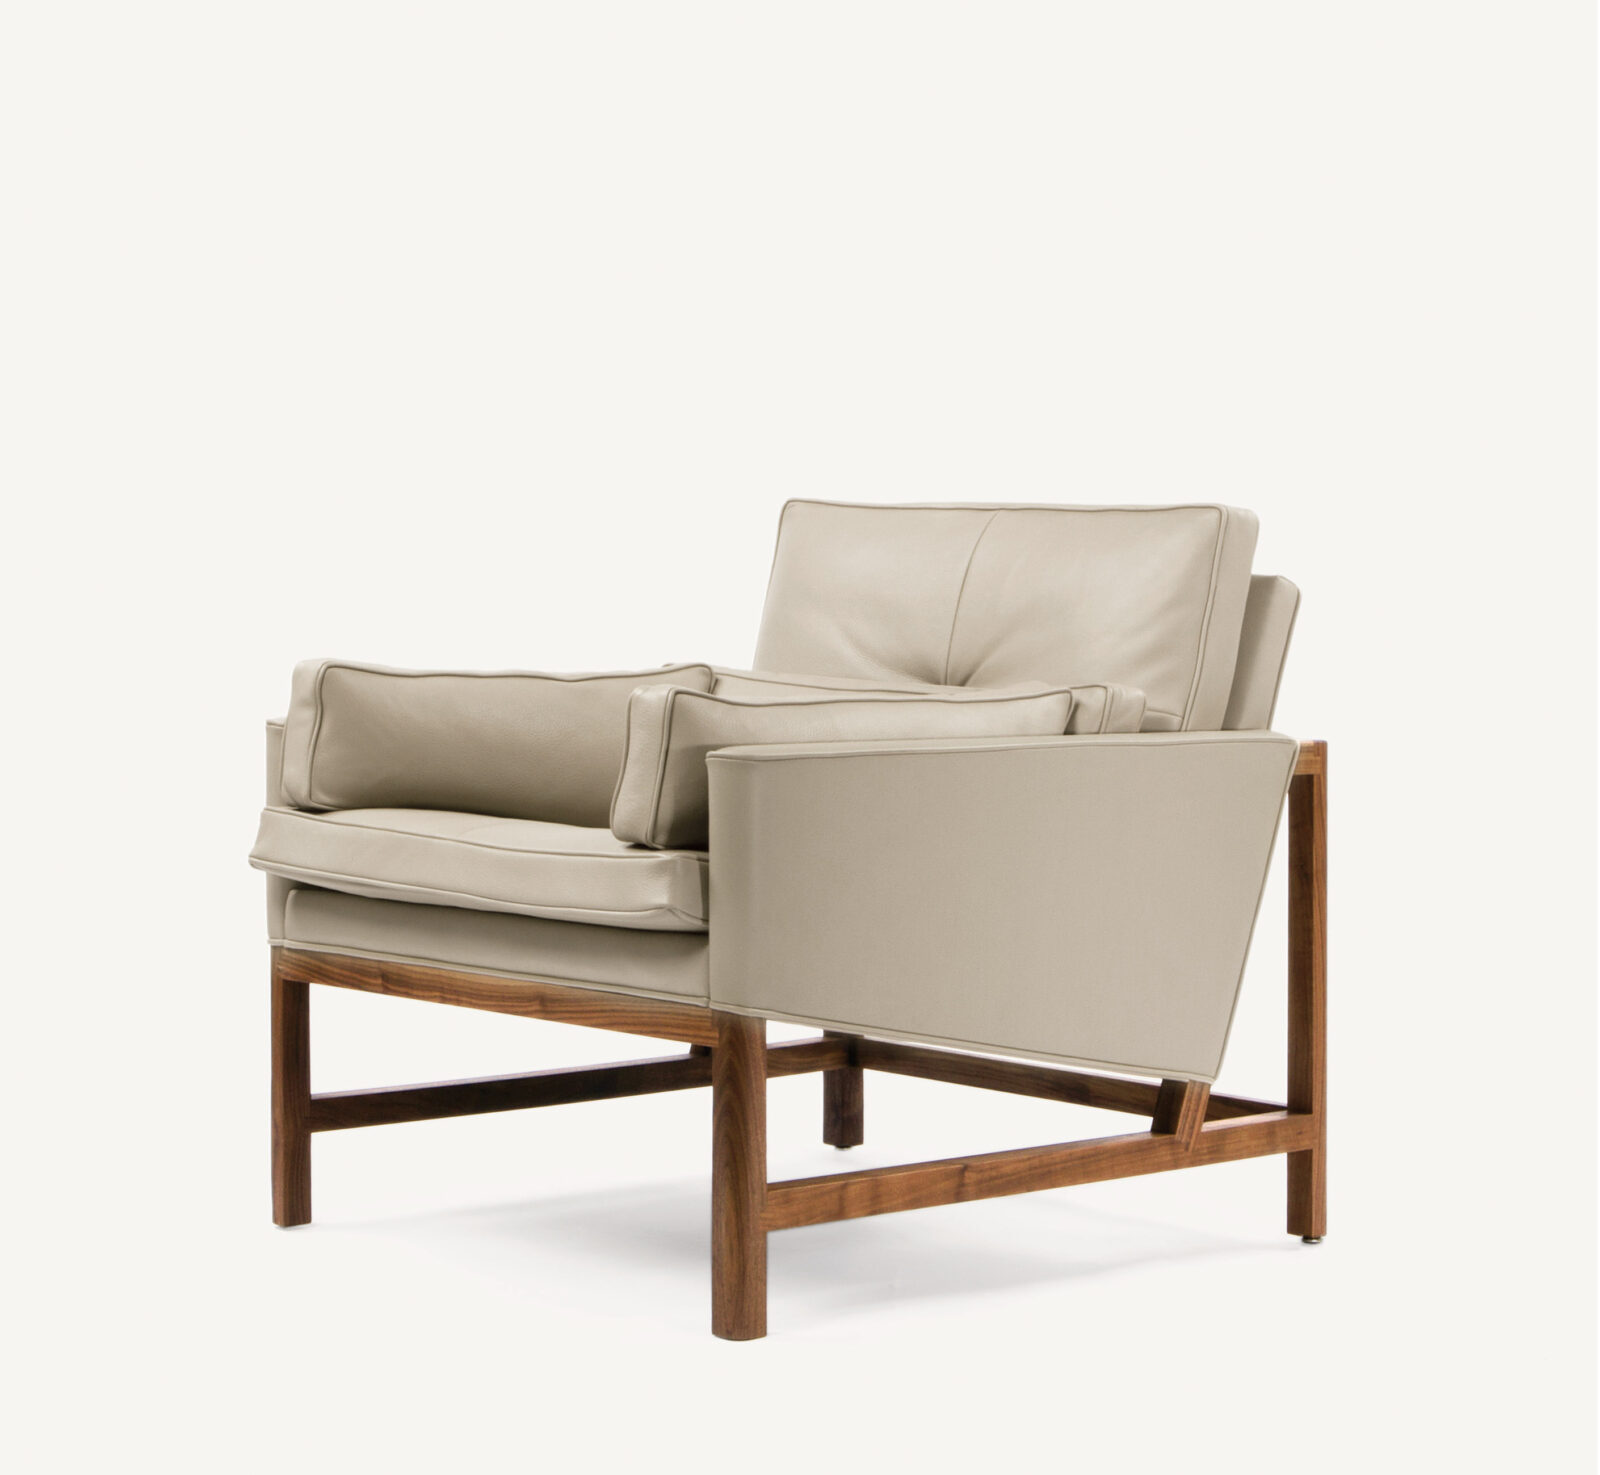 BassamFellows CB-50 Low Back Lounge Chair with solid Walnut frame, credit MATTEO MENDIOLA